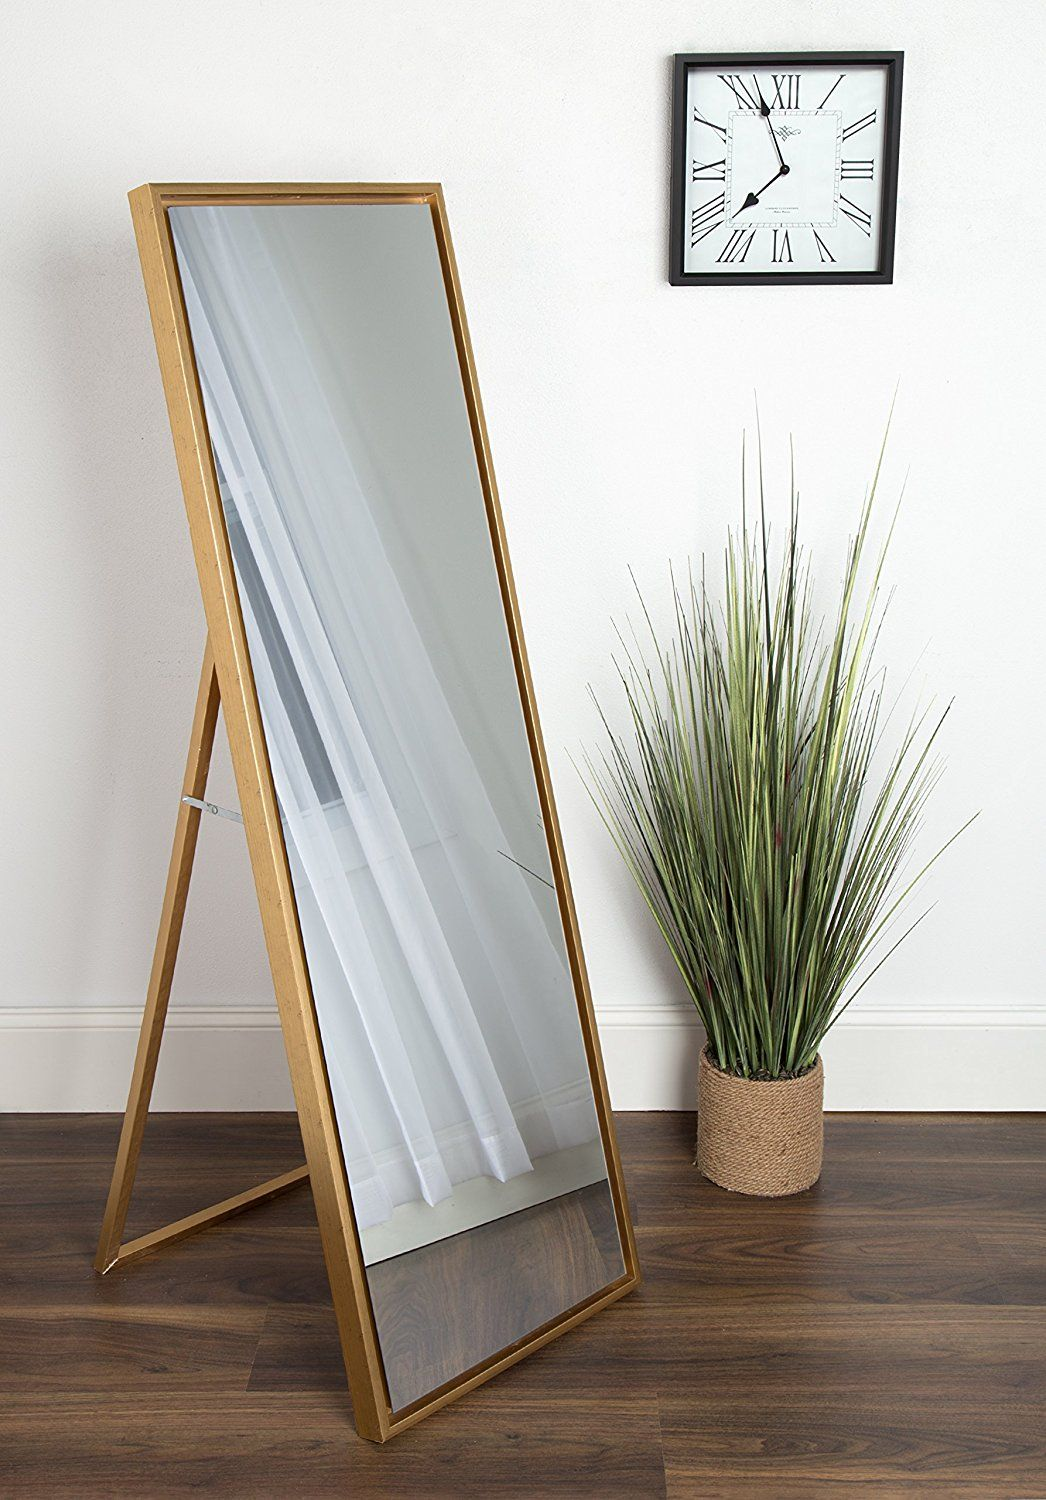 Amazon Com Kate And Laurel Evans Wood Framed Free Standing Mirror With Easel Gold Kitchen Dining Mirror Wall Decor Wall Decor Living Room Floor Mirror